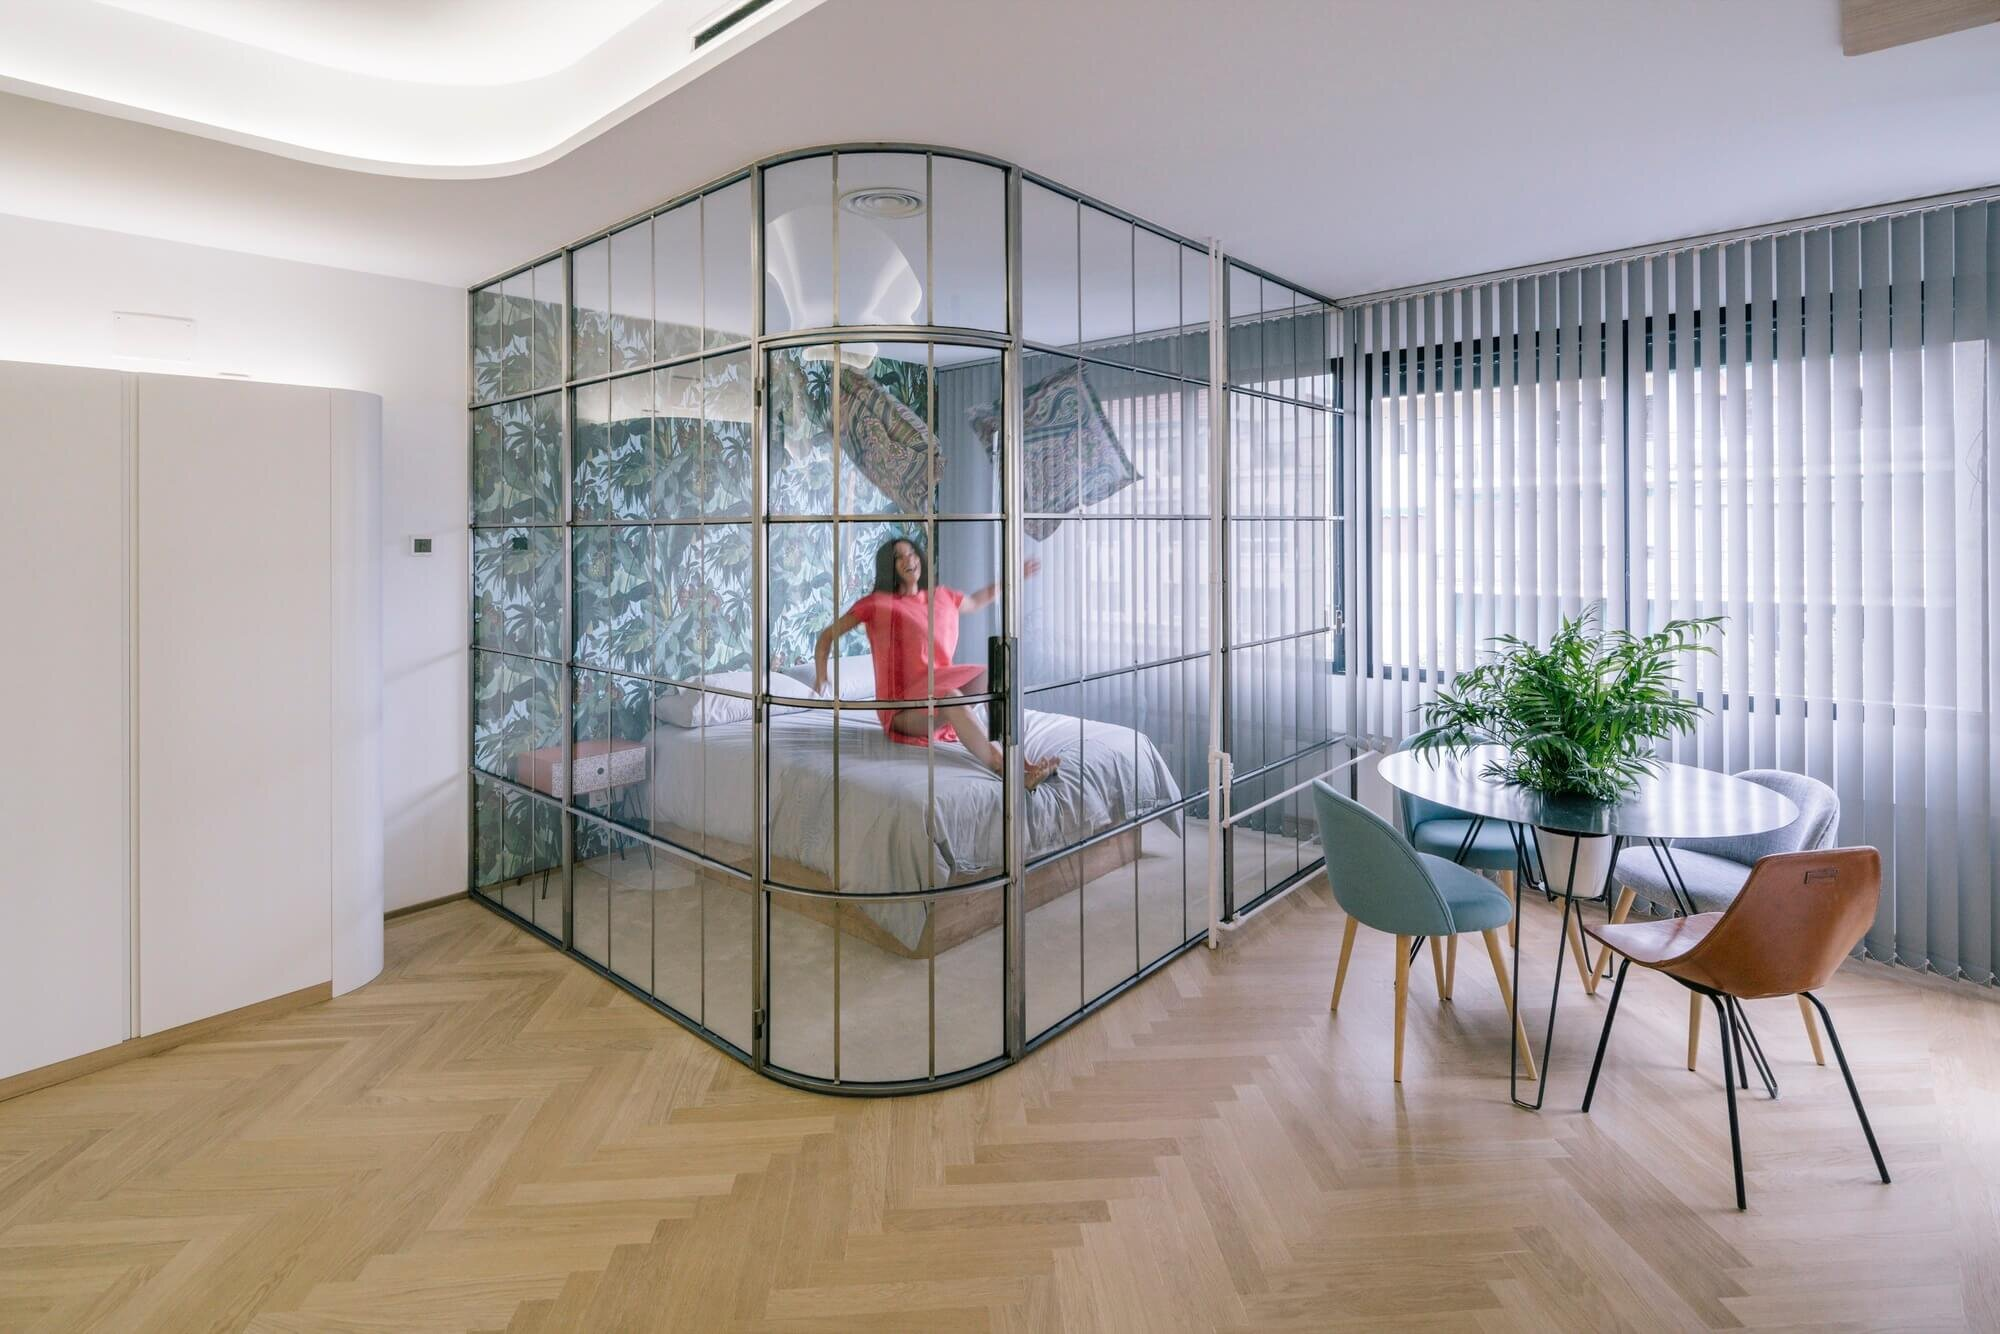 Which Takes Inspiration From Boats In Order To Make The Most Of A Small Studio Apartment Or This French Artists Work Transformation An Old Home